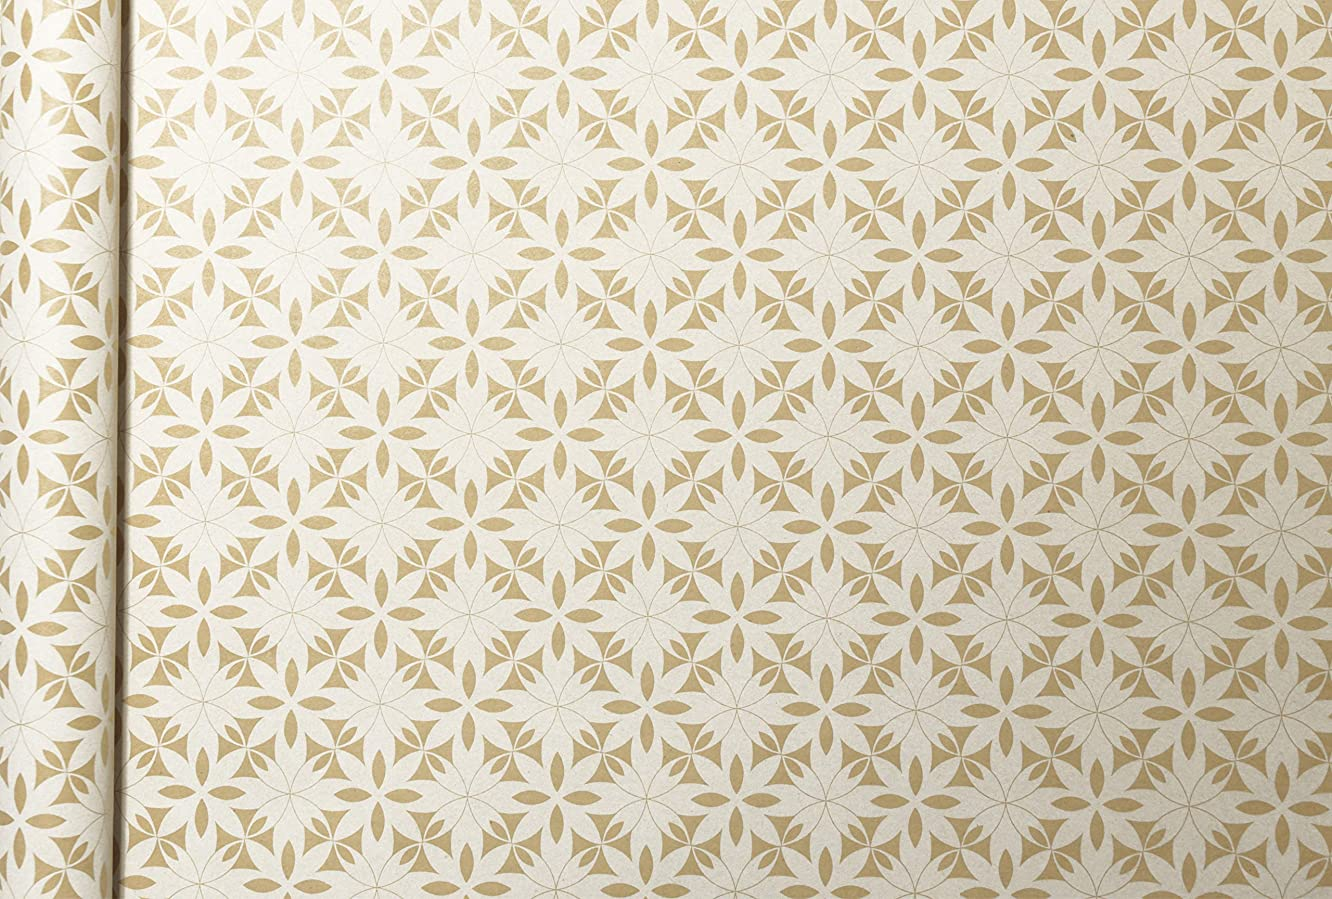 Clairefontaine 223830C 5 x 0.35 m Kraft Wrapping Paper - White Flowers